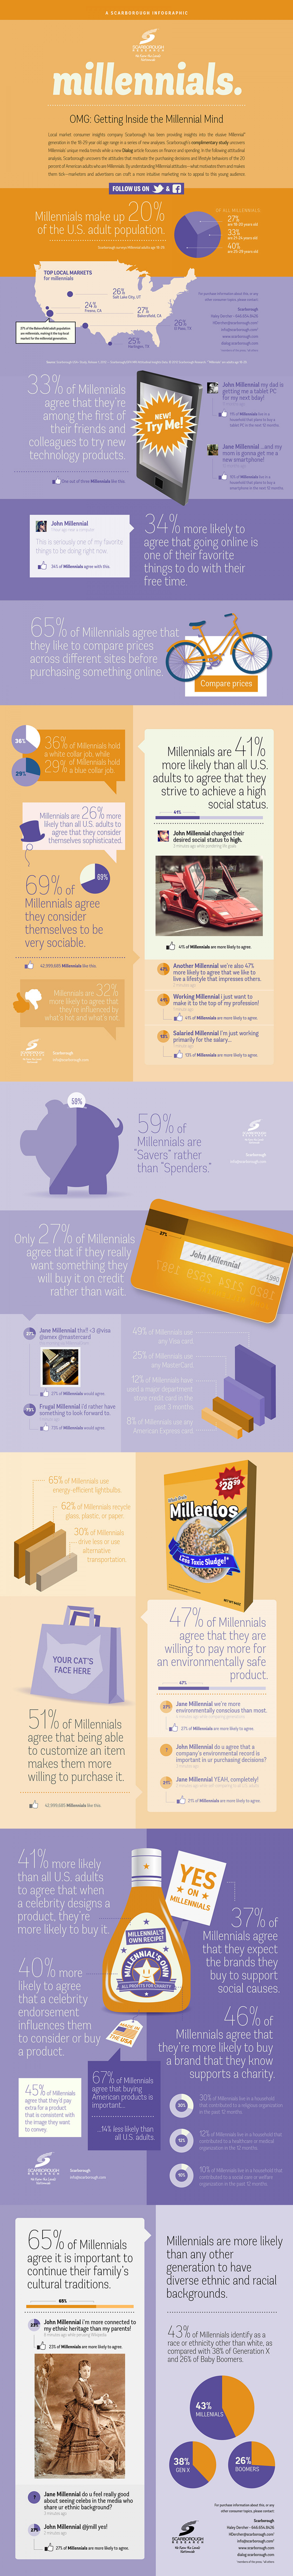 OMG: Getting Inside the Millennial Mind Infographic